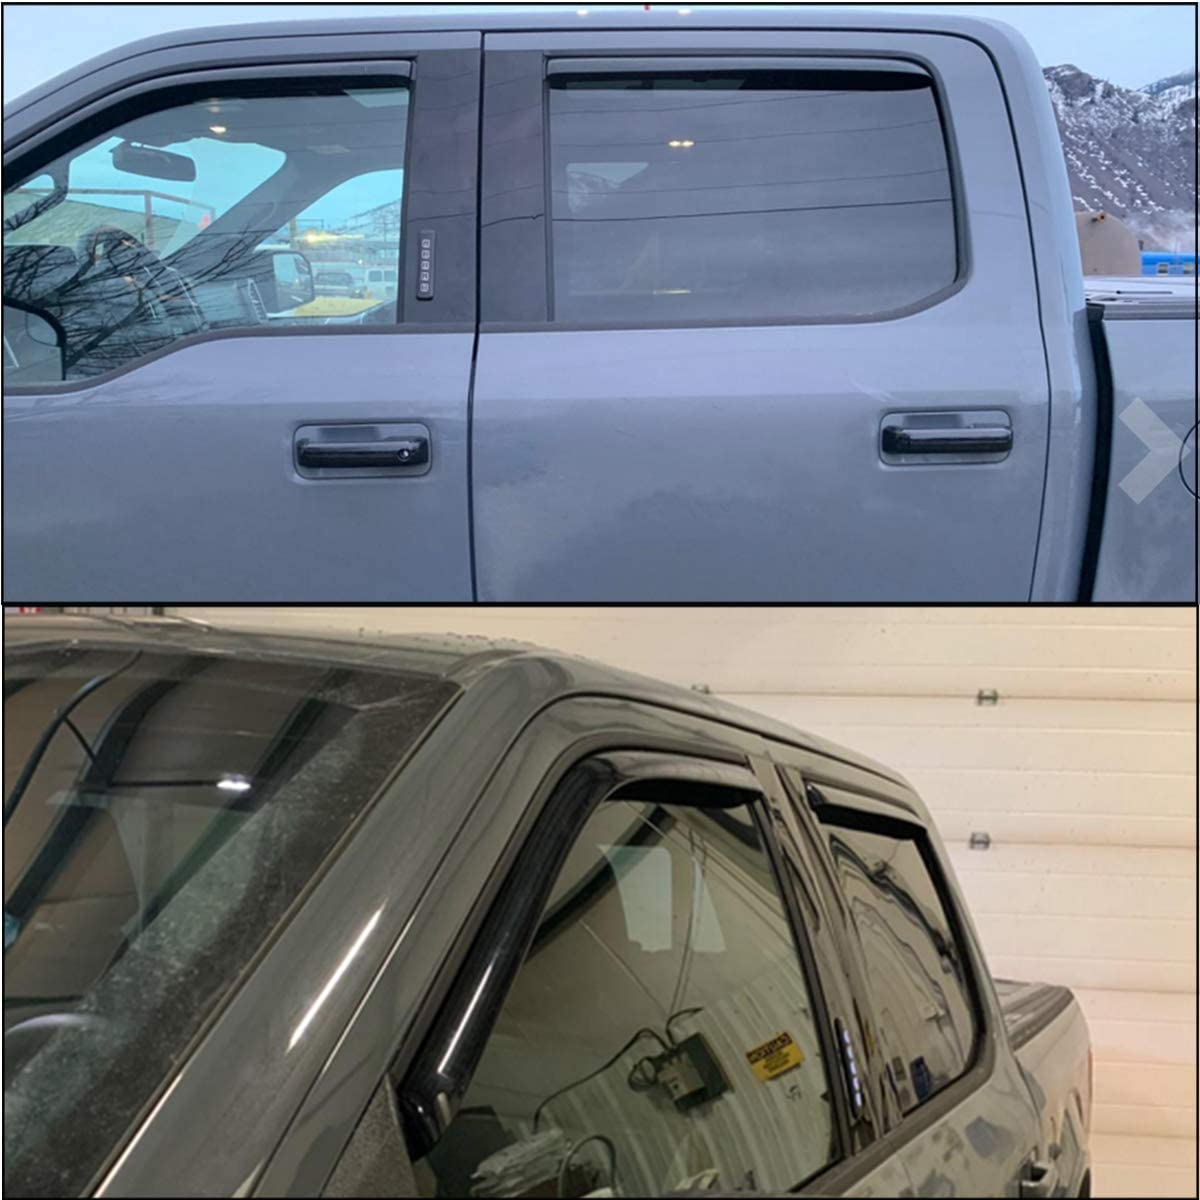 Lightronic WV194975 in-Channel Window Visors Rain Guards Smoke Tint 4PCS Set Fit for Ford F150 Crew Cab Pickup 2015-2020